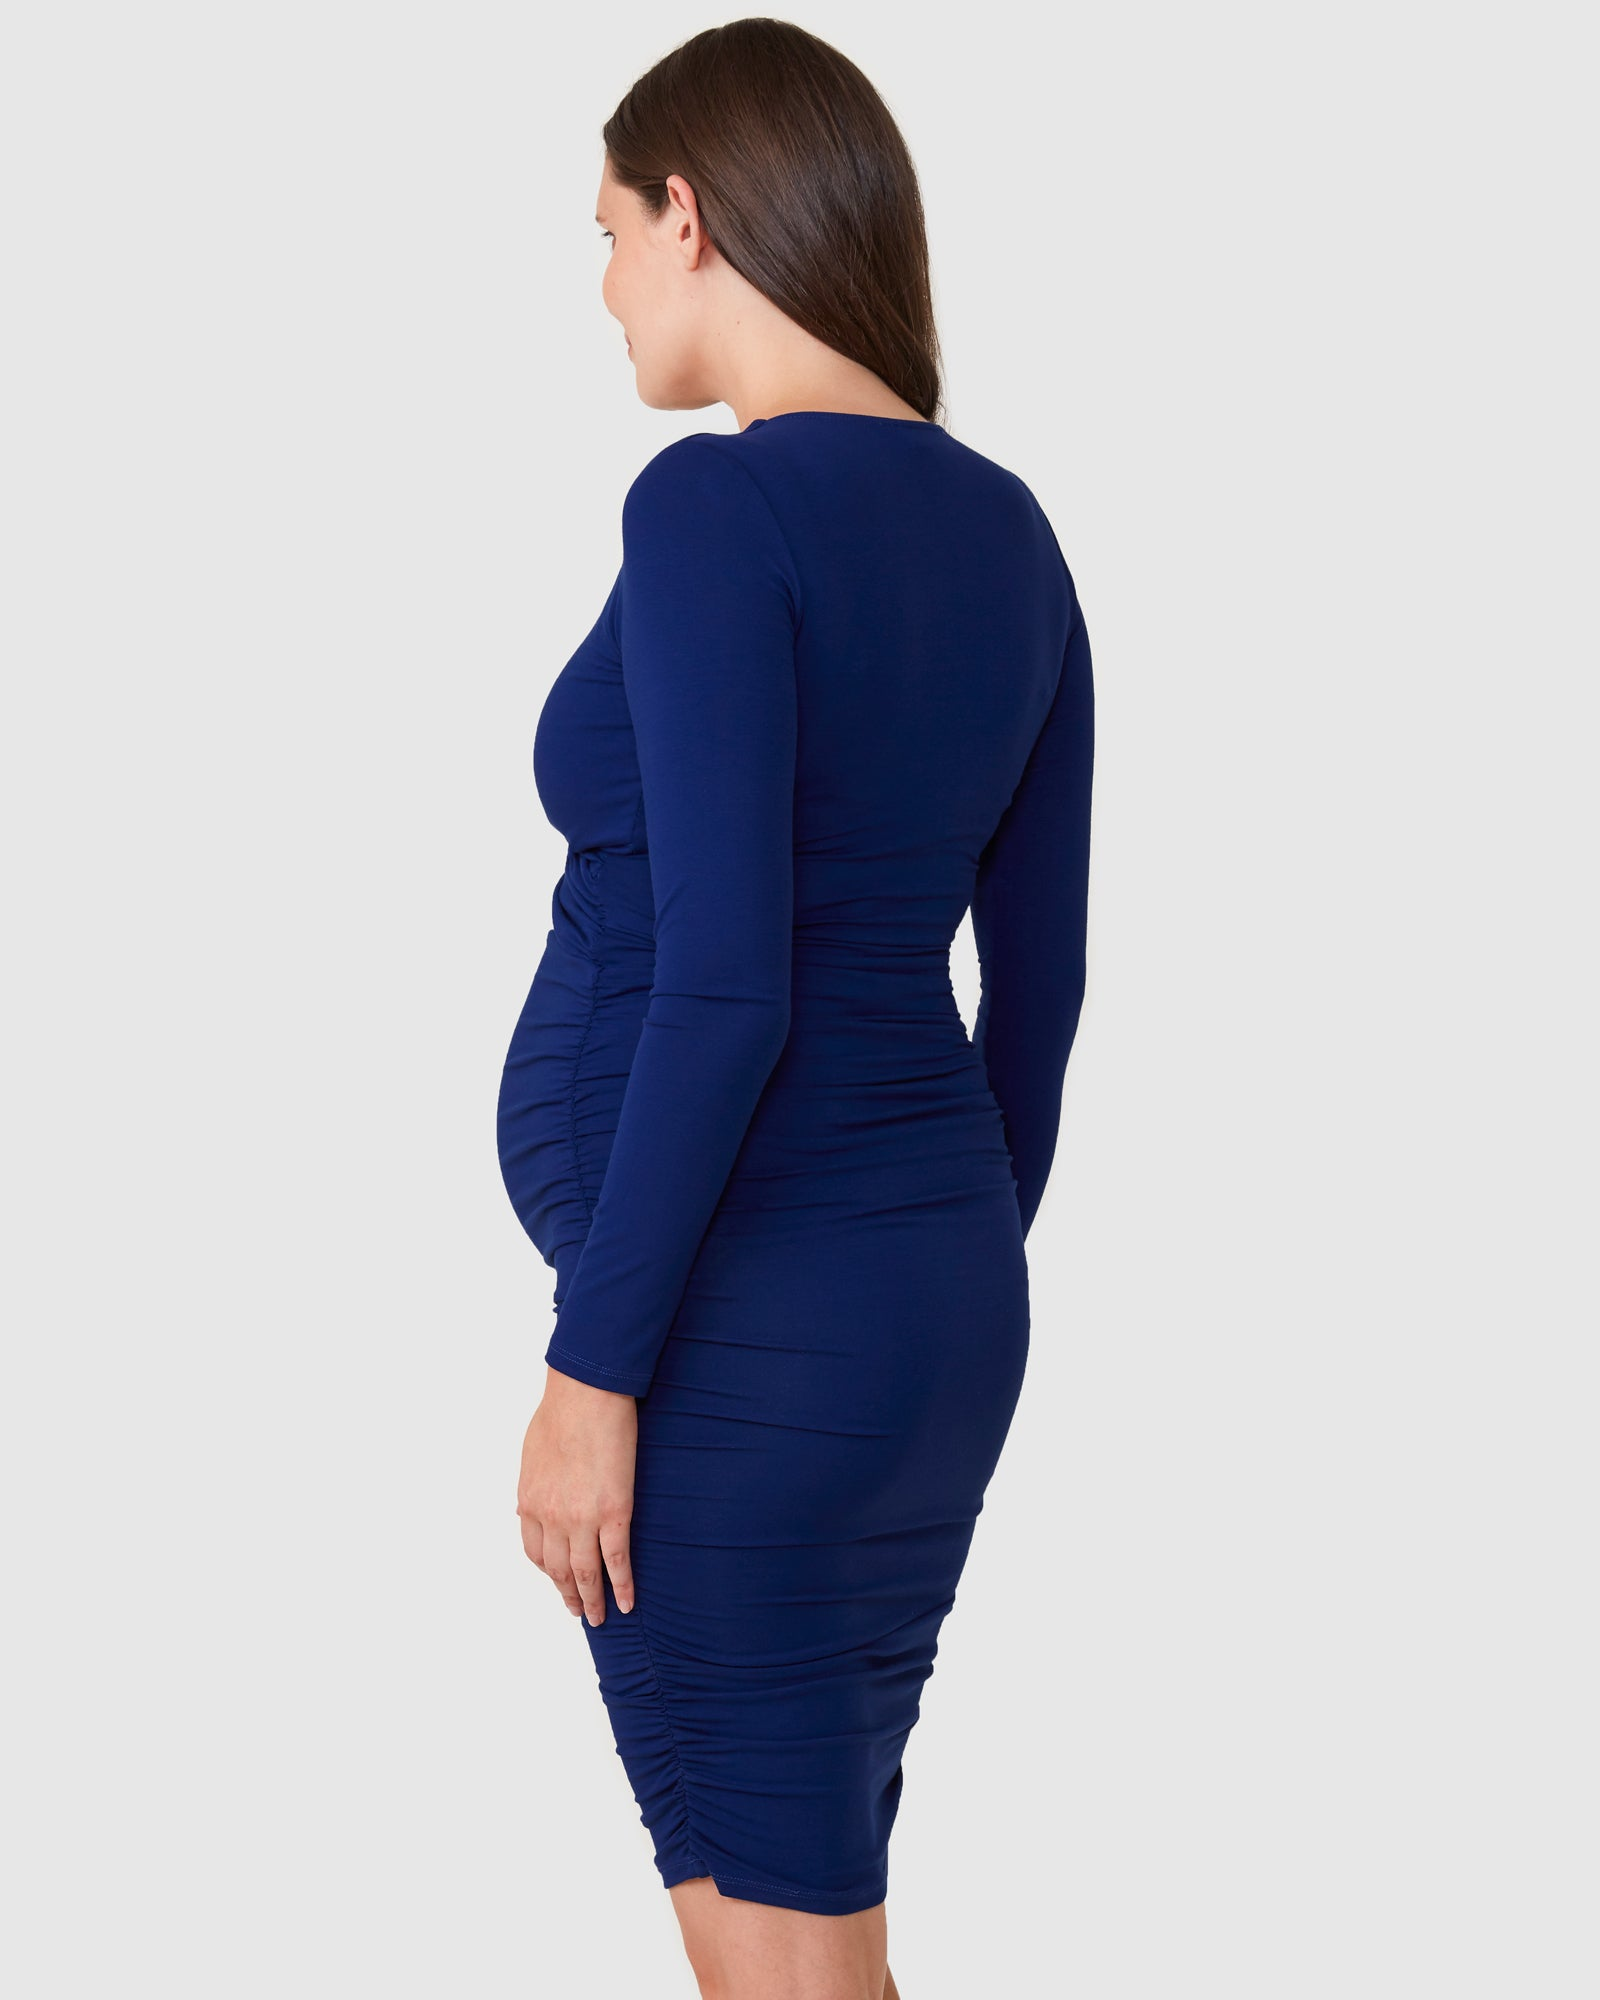 Bailey Crossover Long Sleeve Nursing Dress